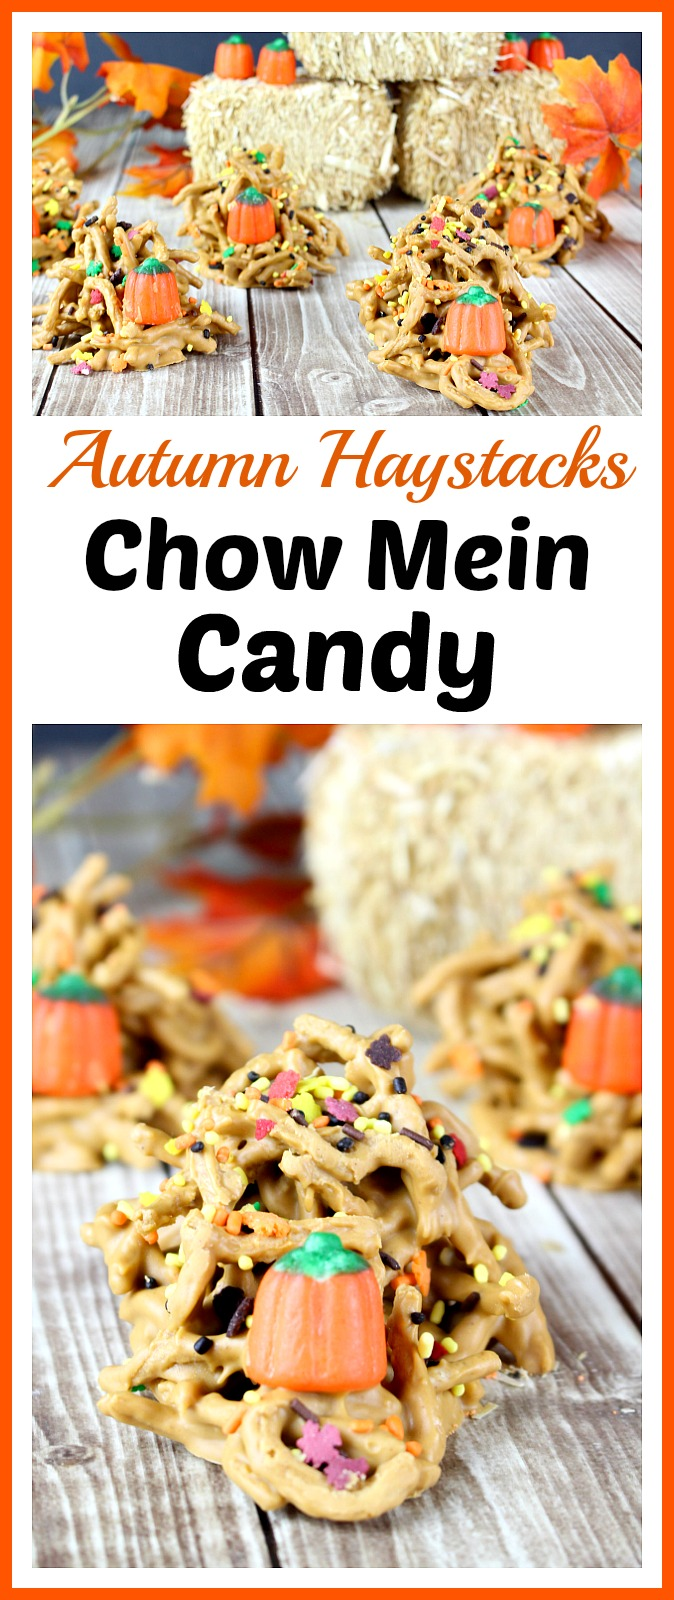 Autumn Haystacks Chow Mein Candy